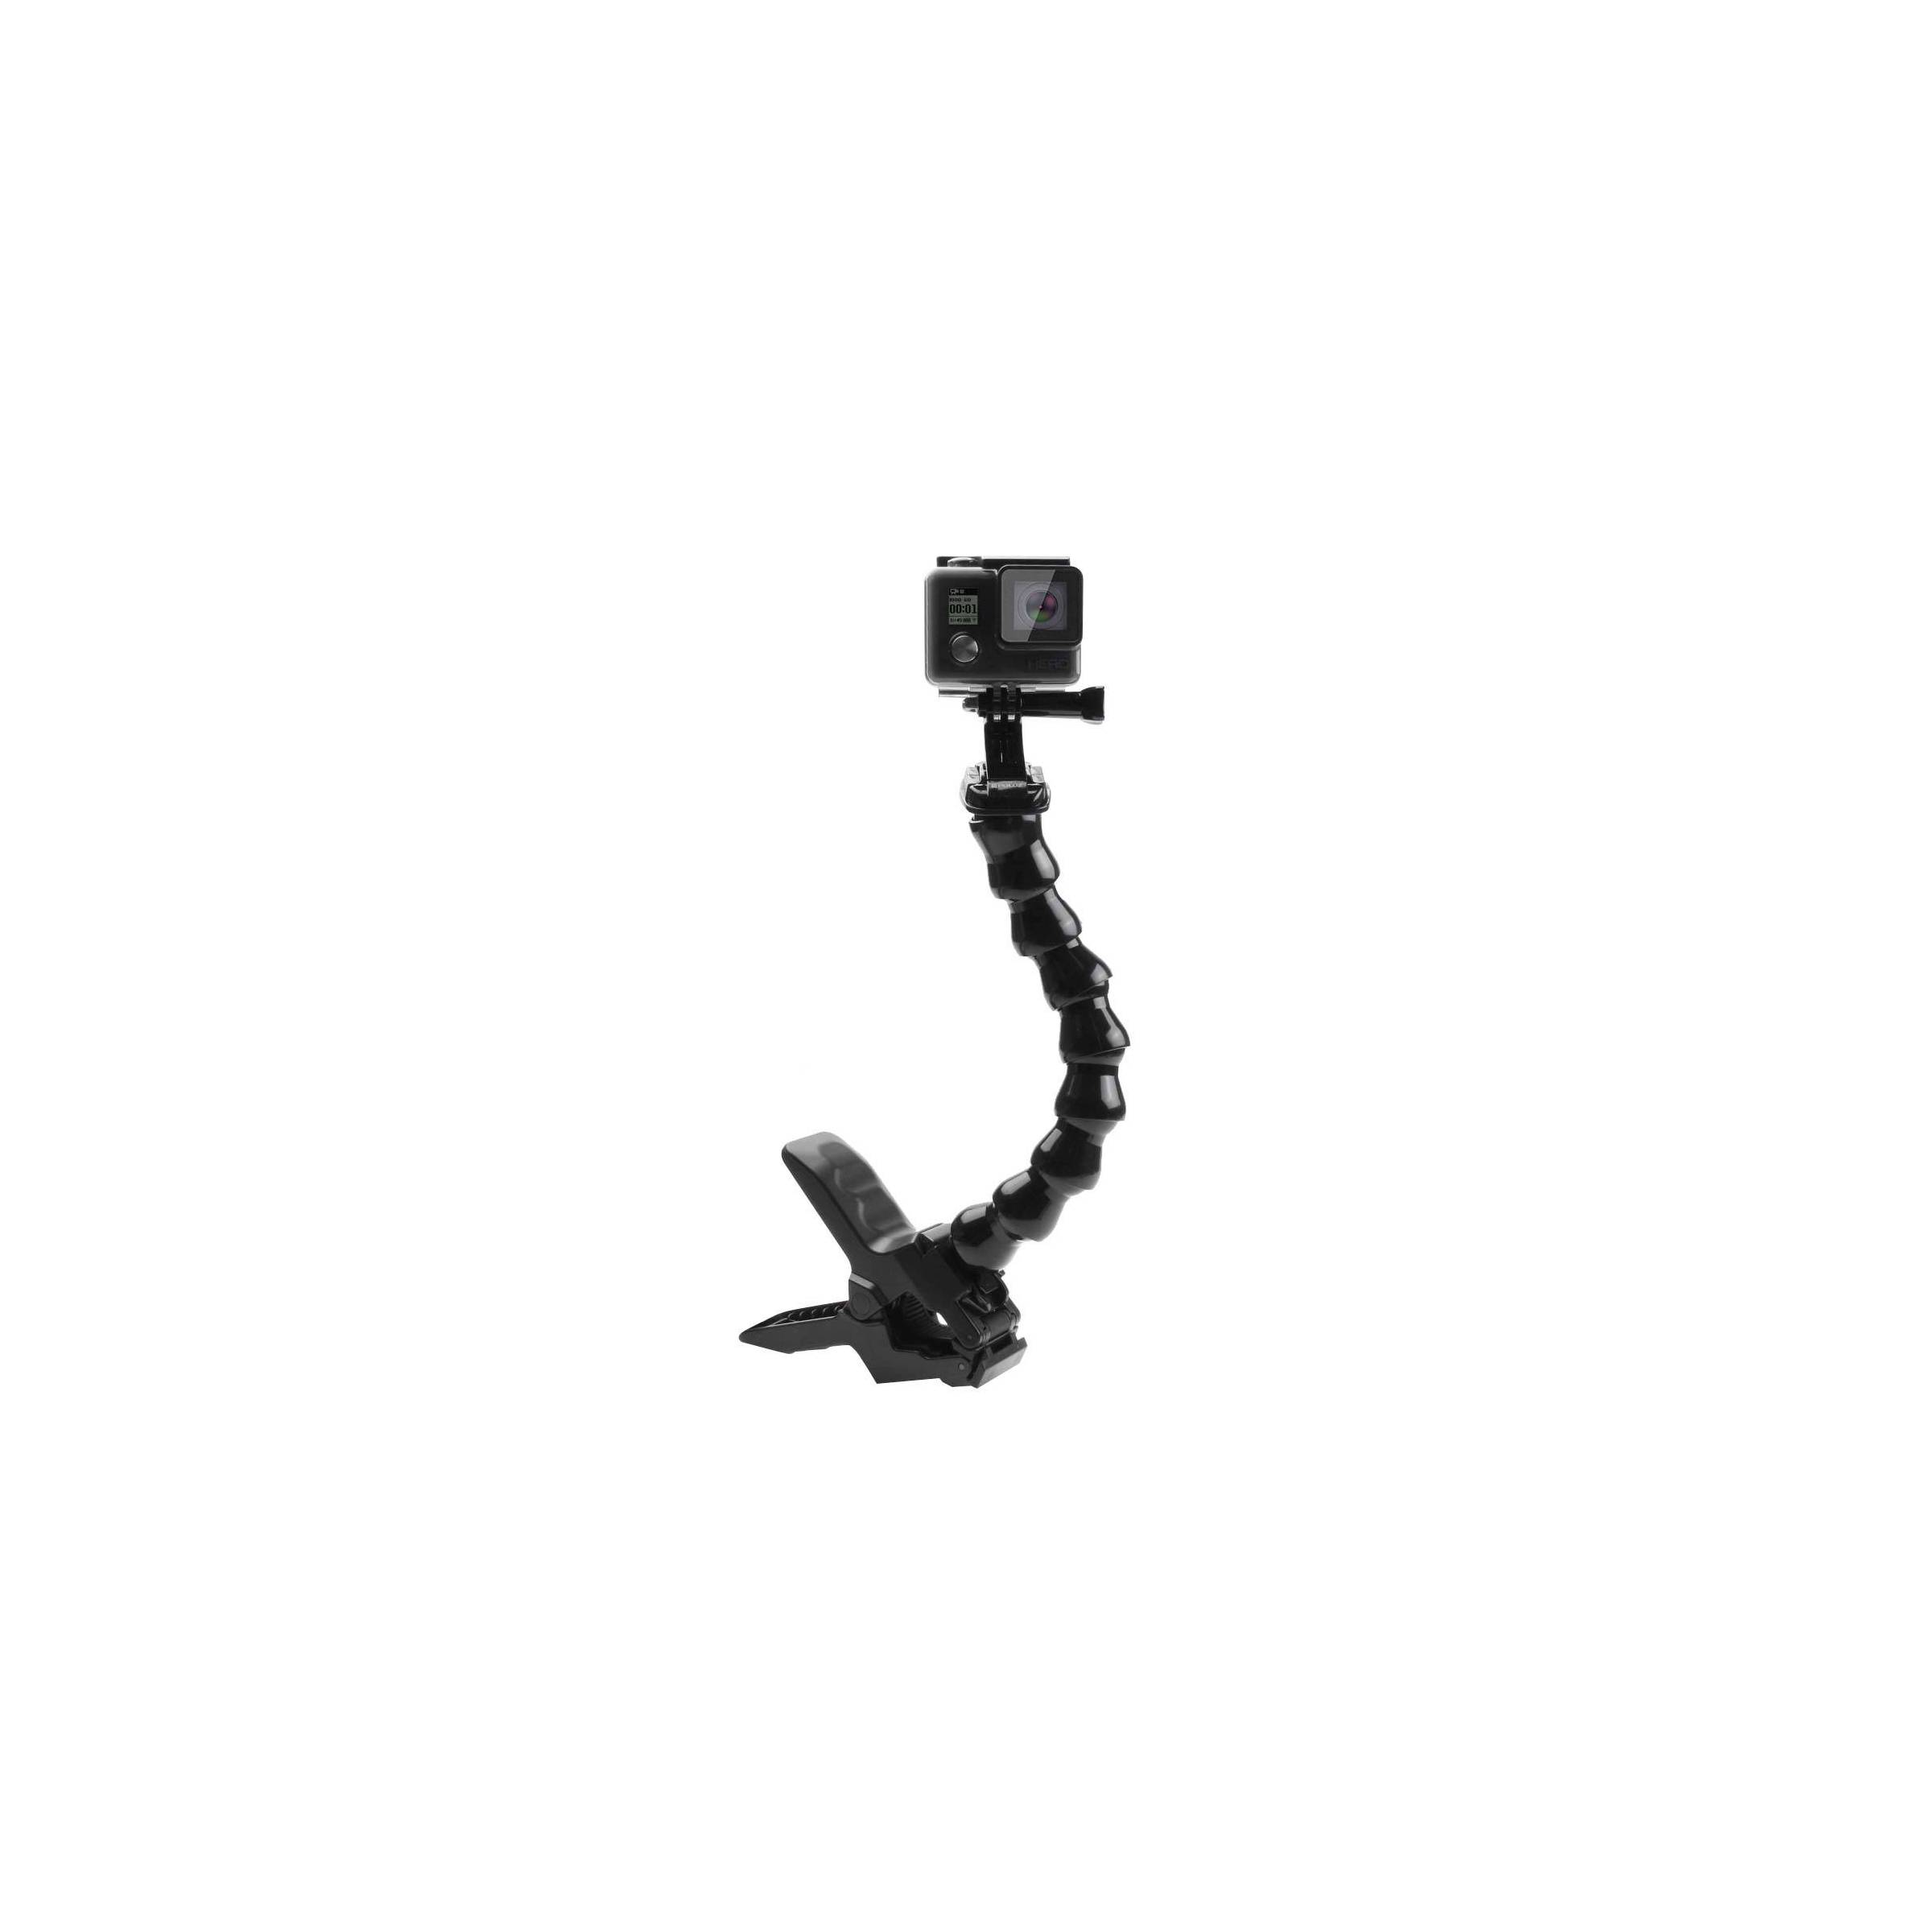 puluz – Puluz action sports cameras jaws flex clamp mount til gopro hero på mackabler.dk